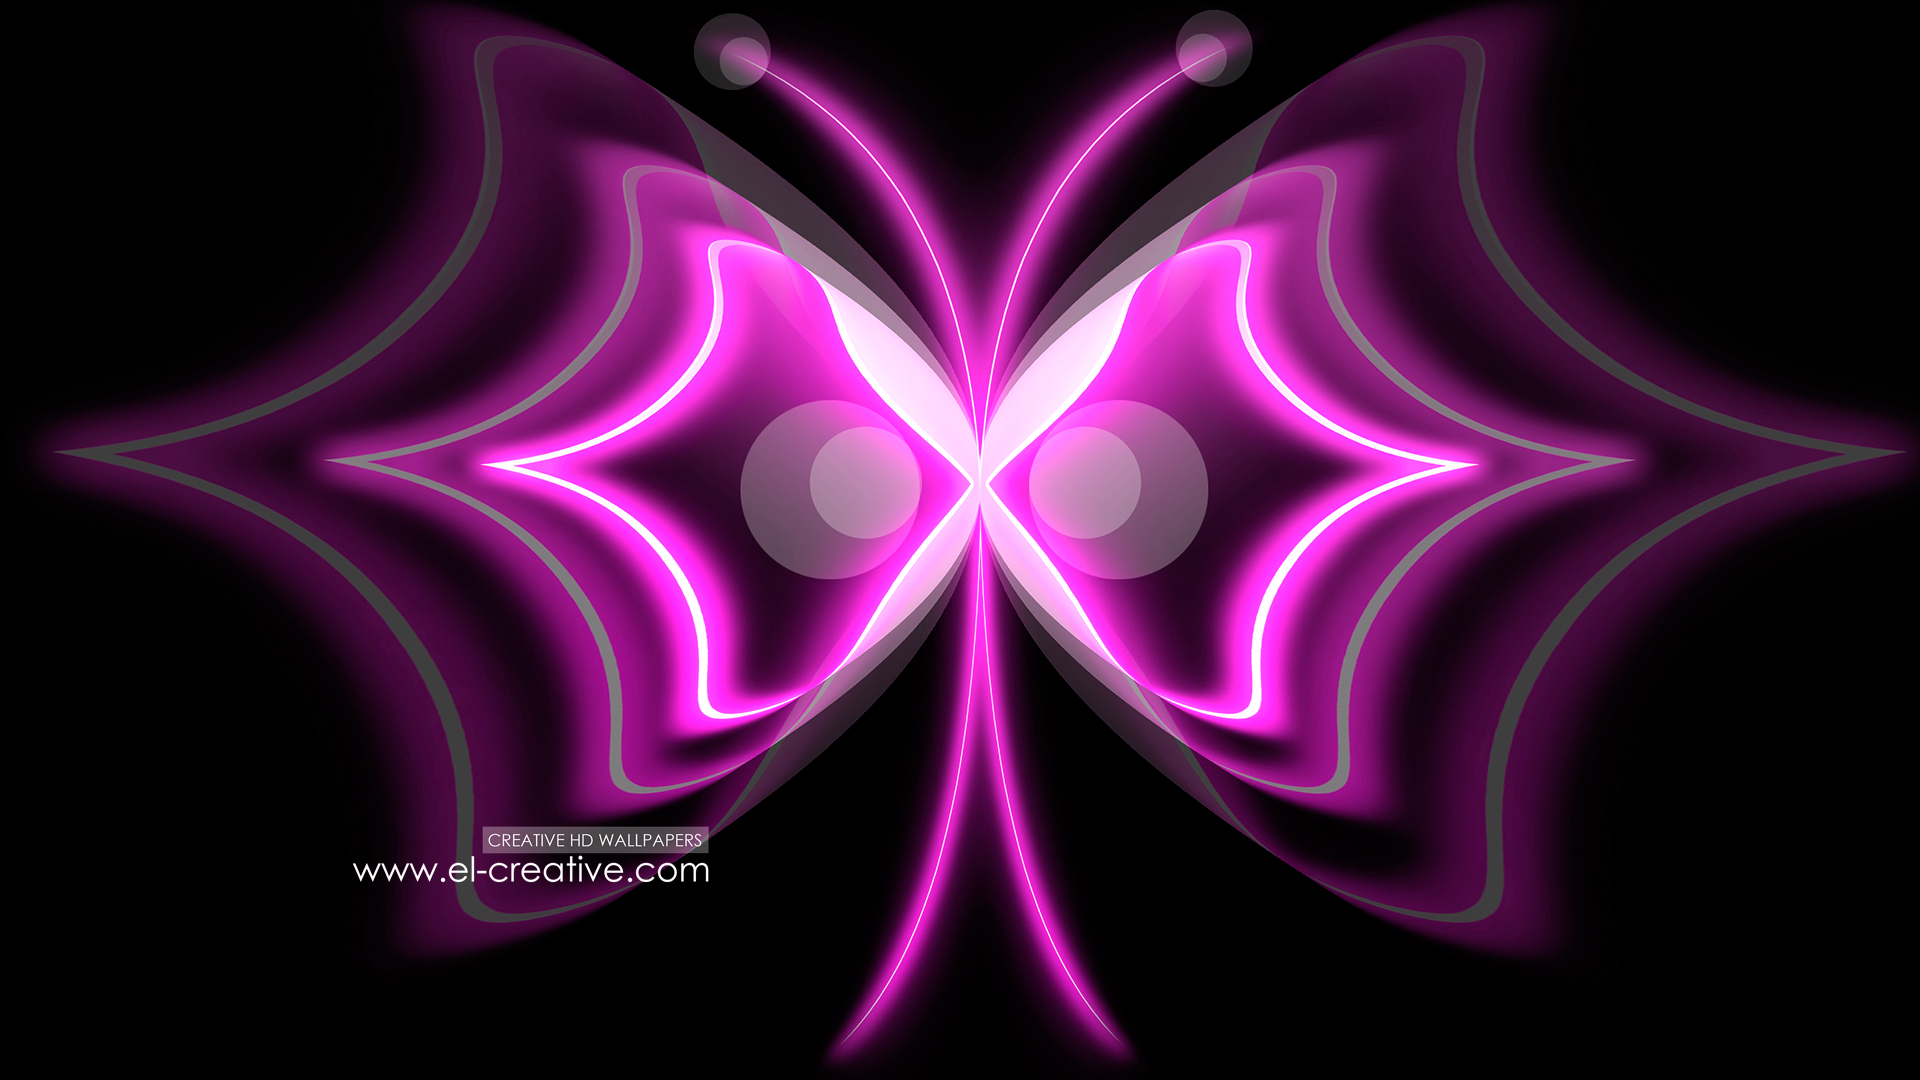 abstract kokhan creative wallpaper design pink wallpapers 1920x1080